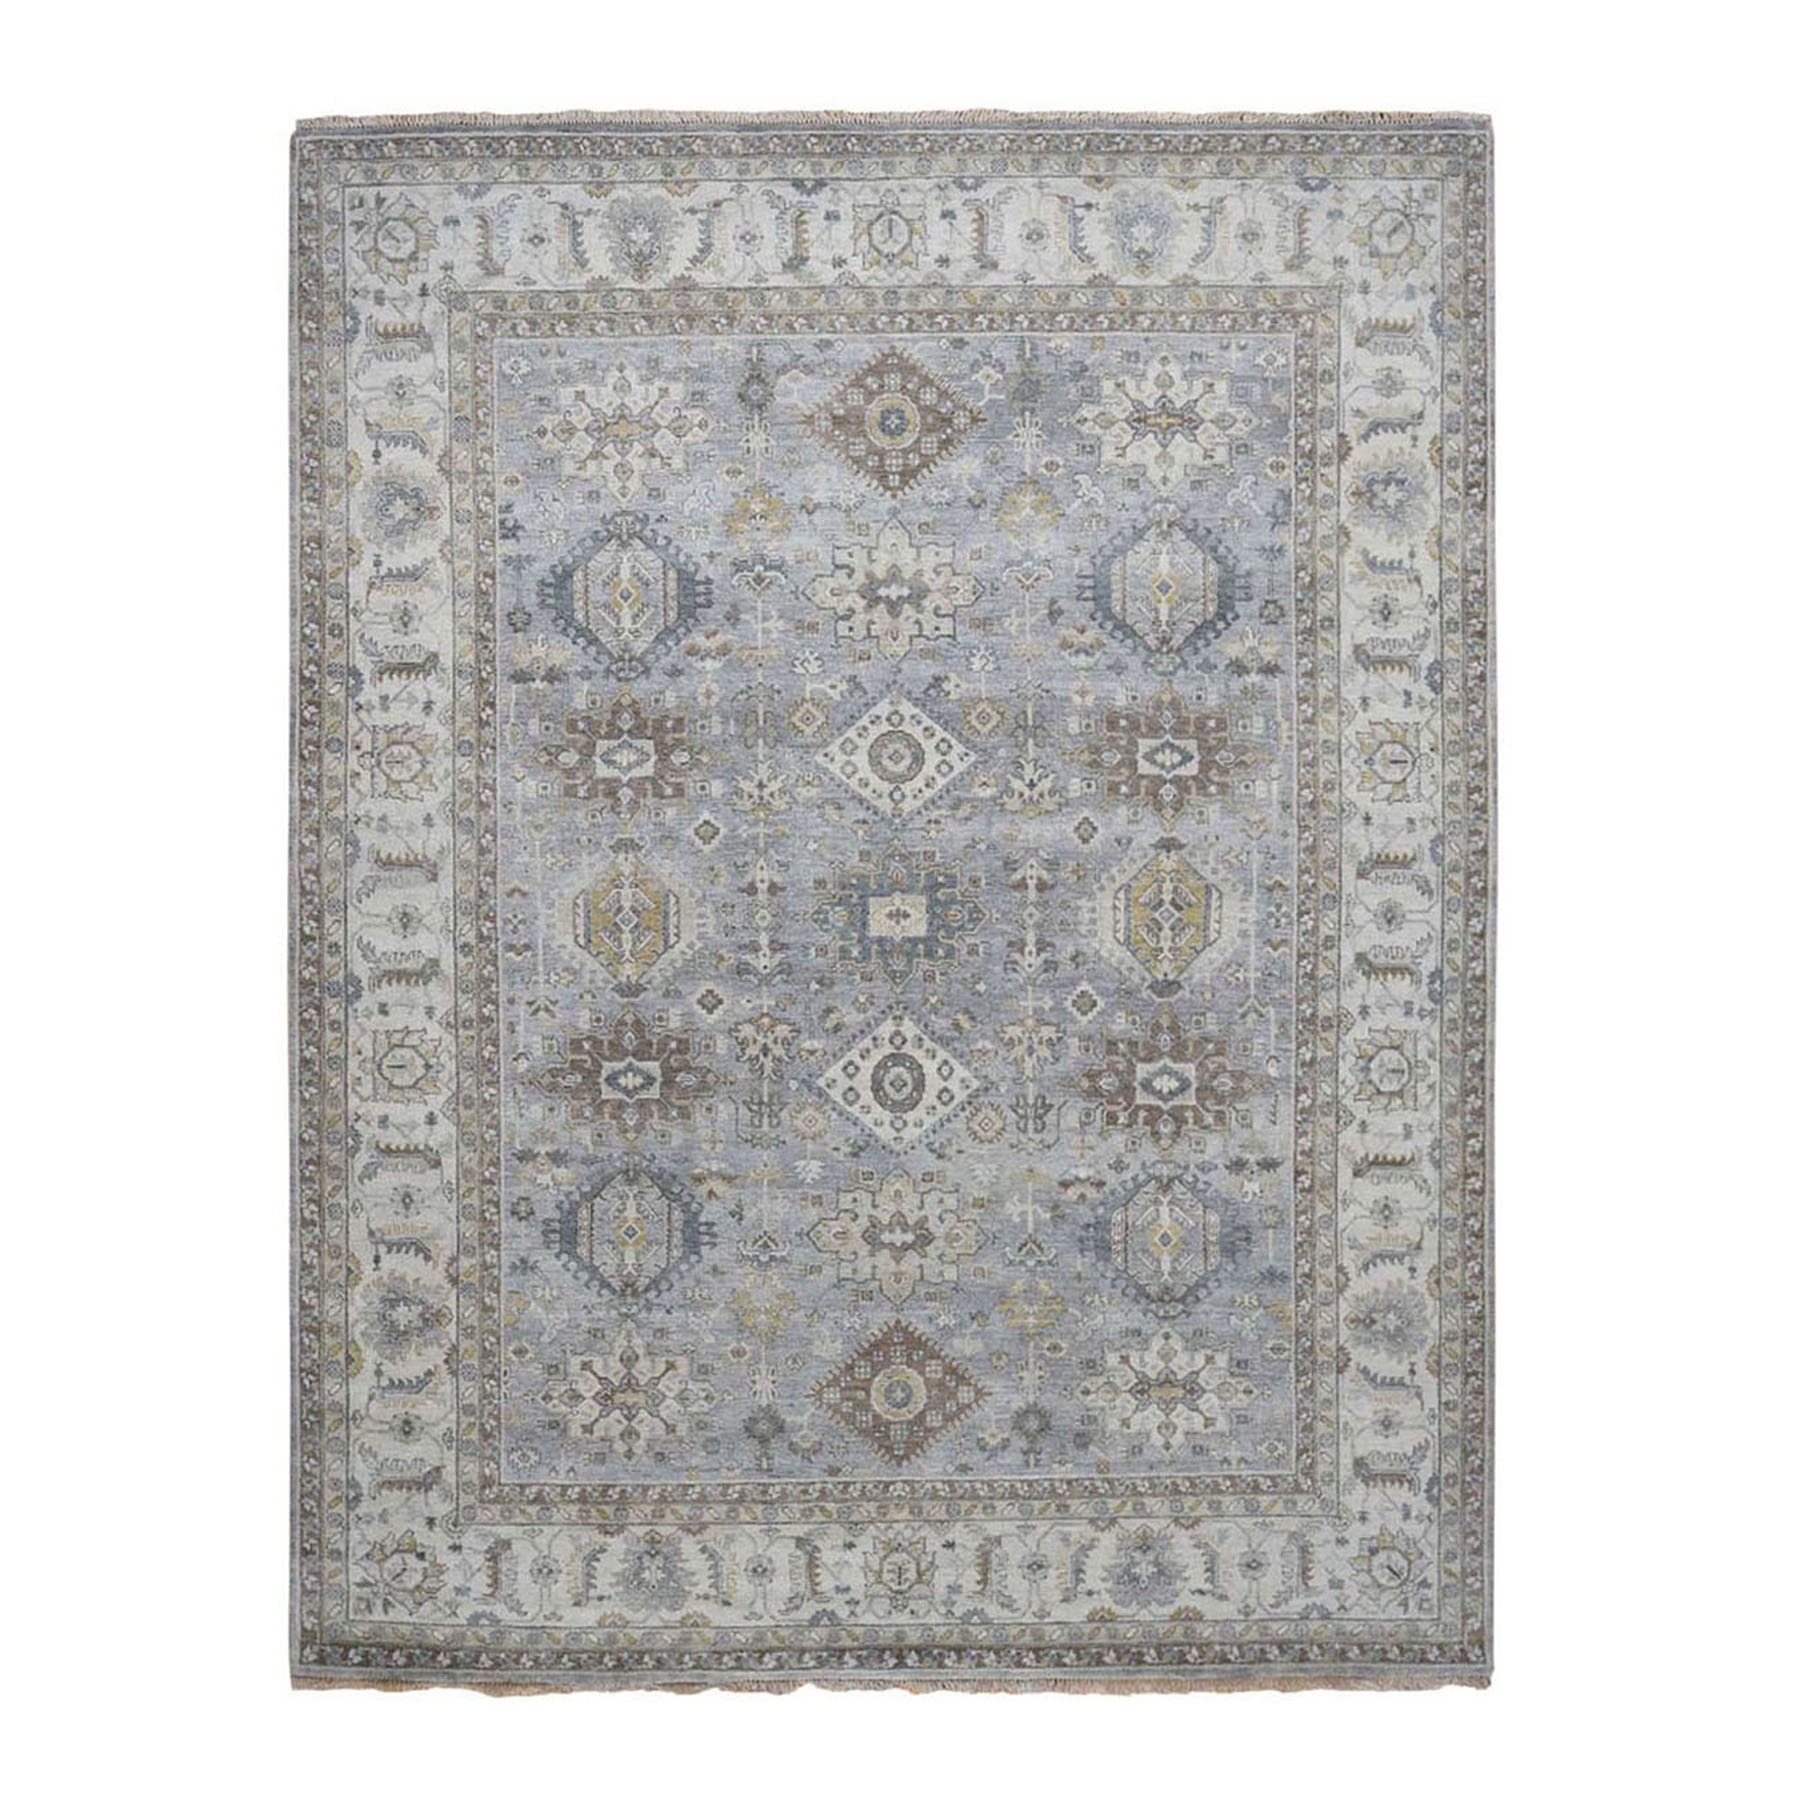 """8'2""""x10'1"""" Karajeh Design Pure Wool Gray Hand Knotted Oriental Rug"""